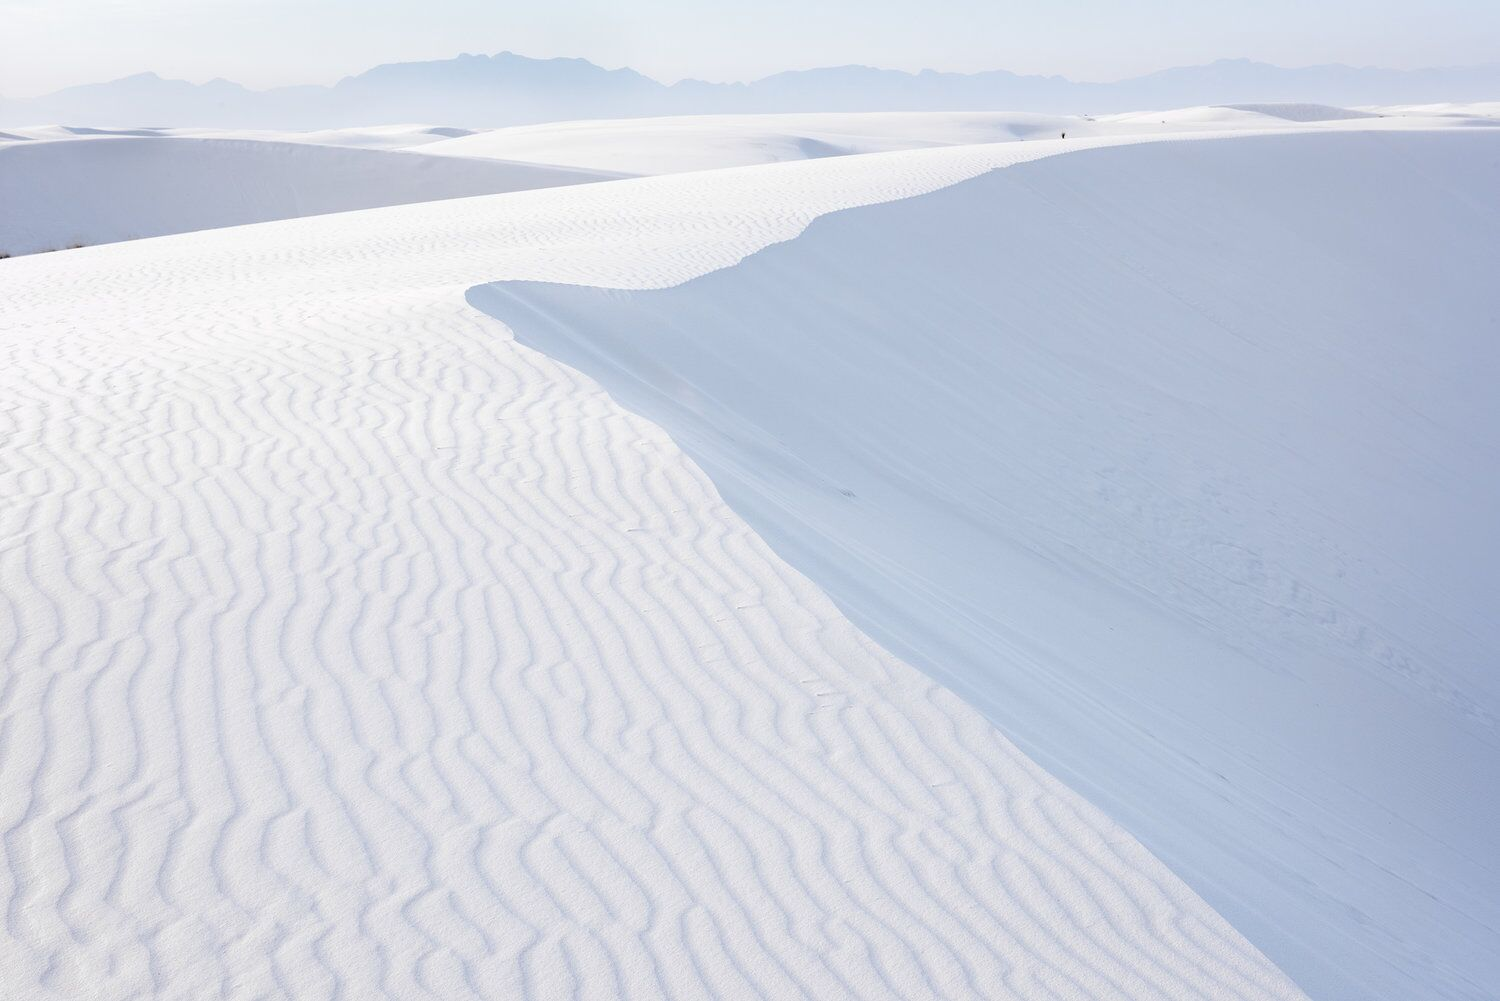 Pastel Dune and Mountains, Spring, White Sands National Monument, New Mexico